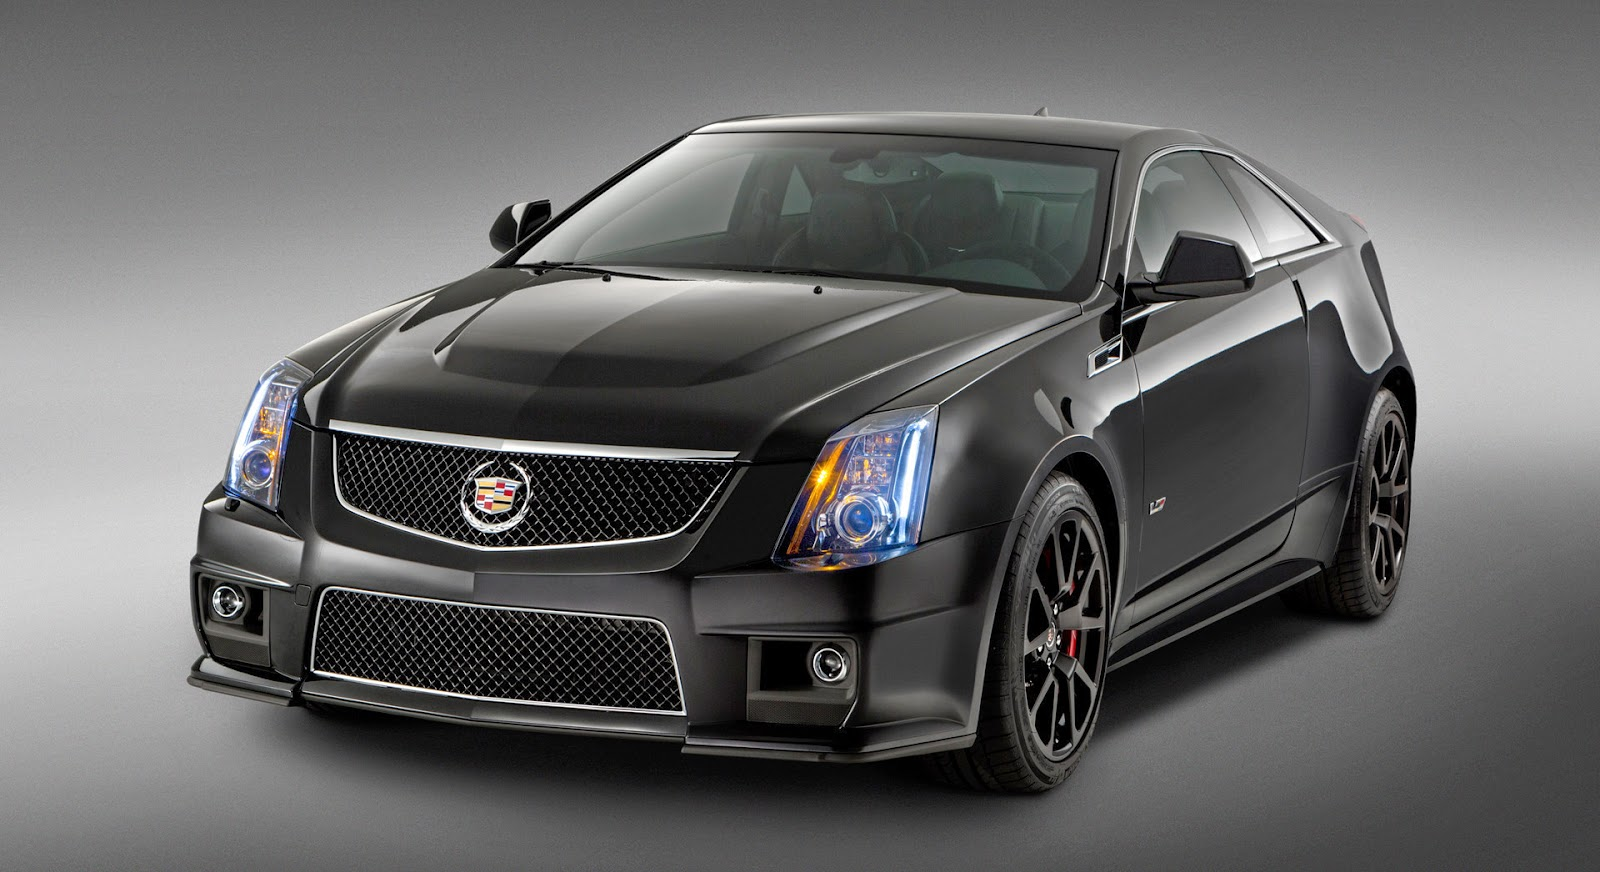 high wheels 2015 cadillac cts v coupe. Black Bedroom Furniture Sets. Home Design Ideas